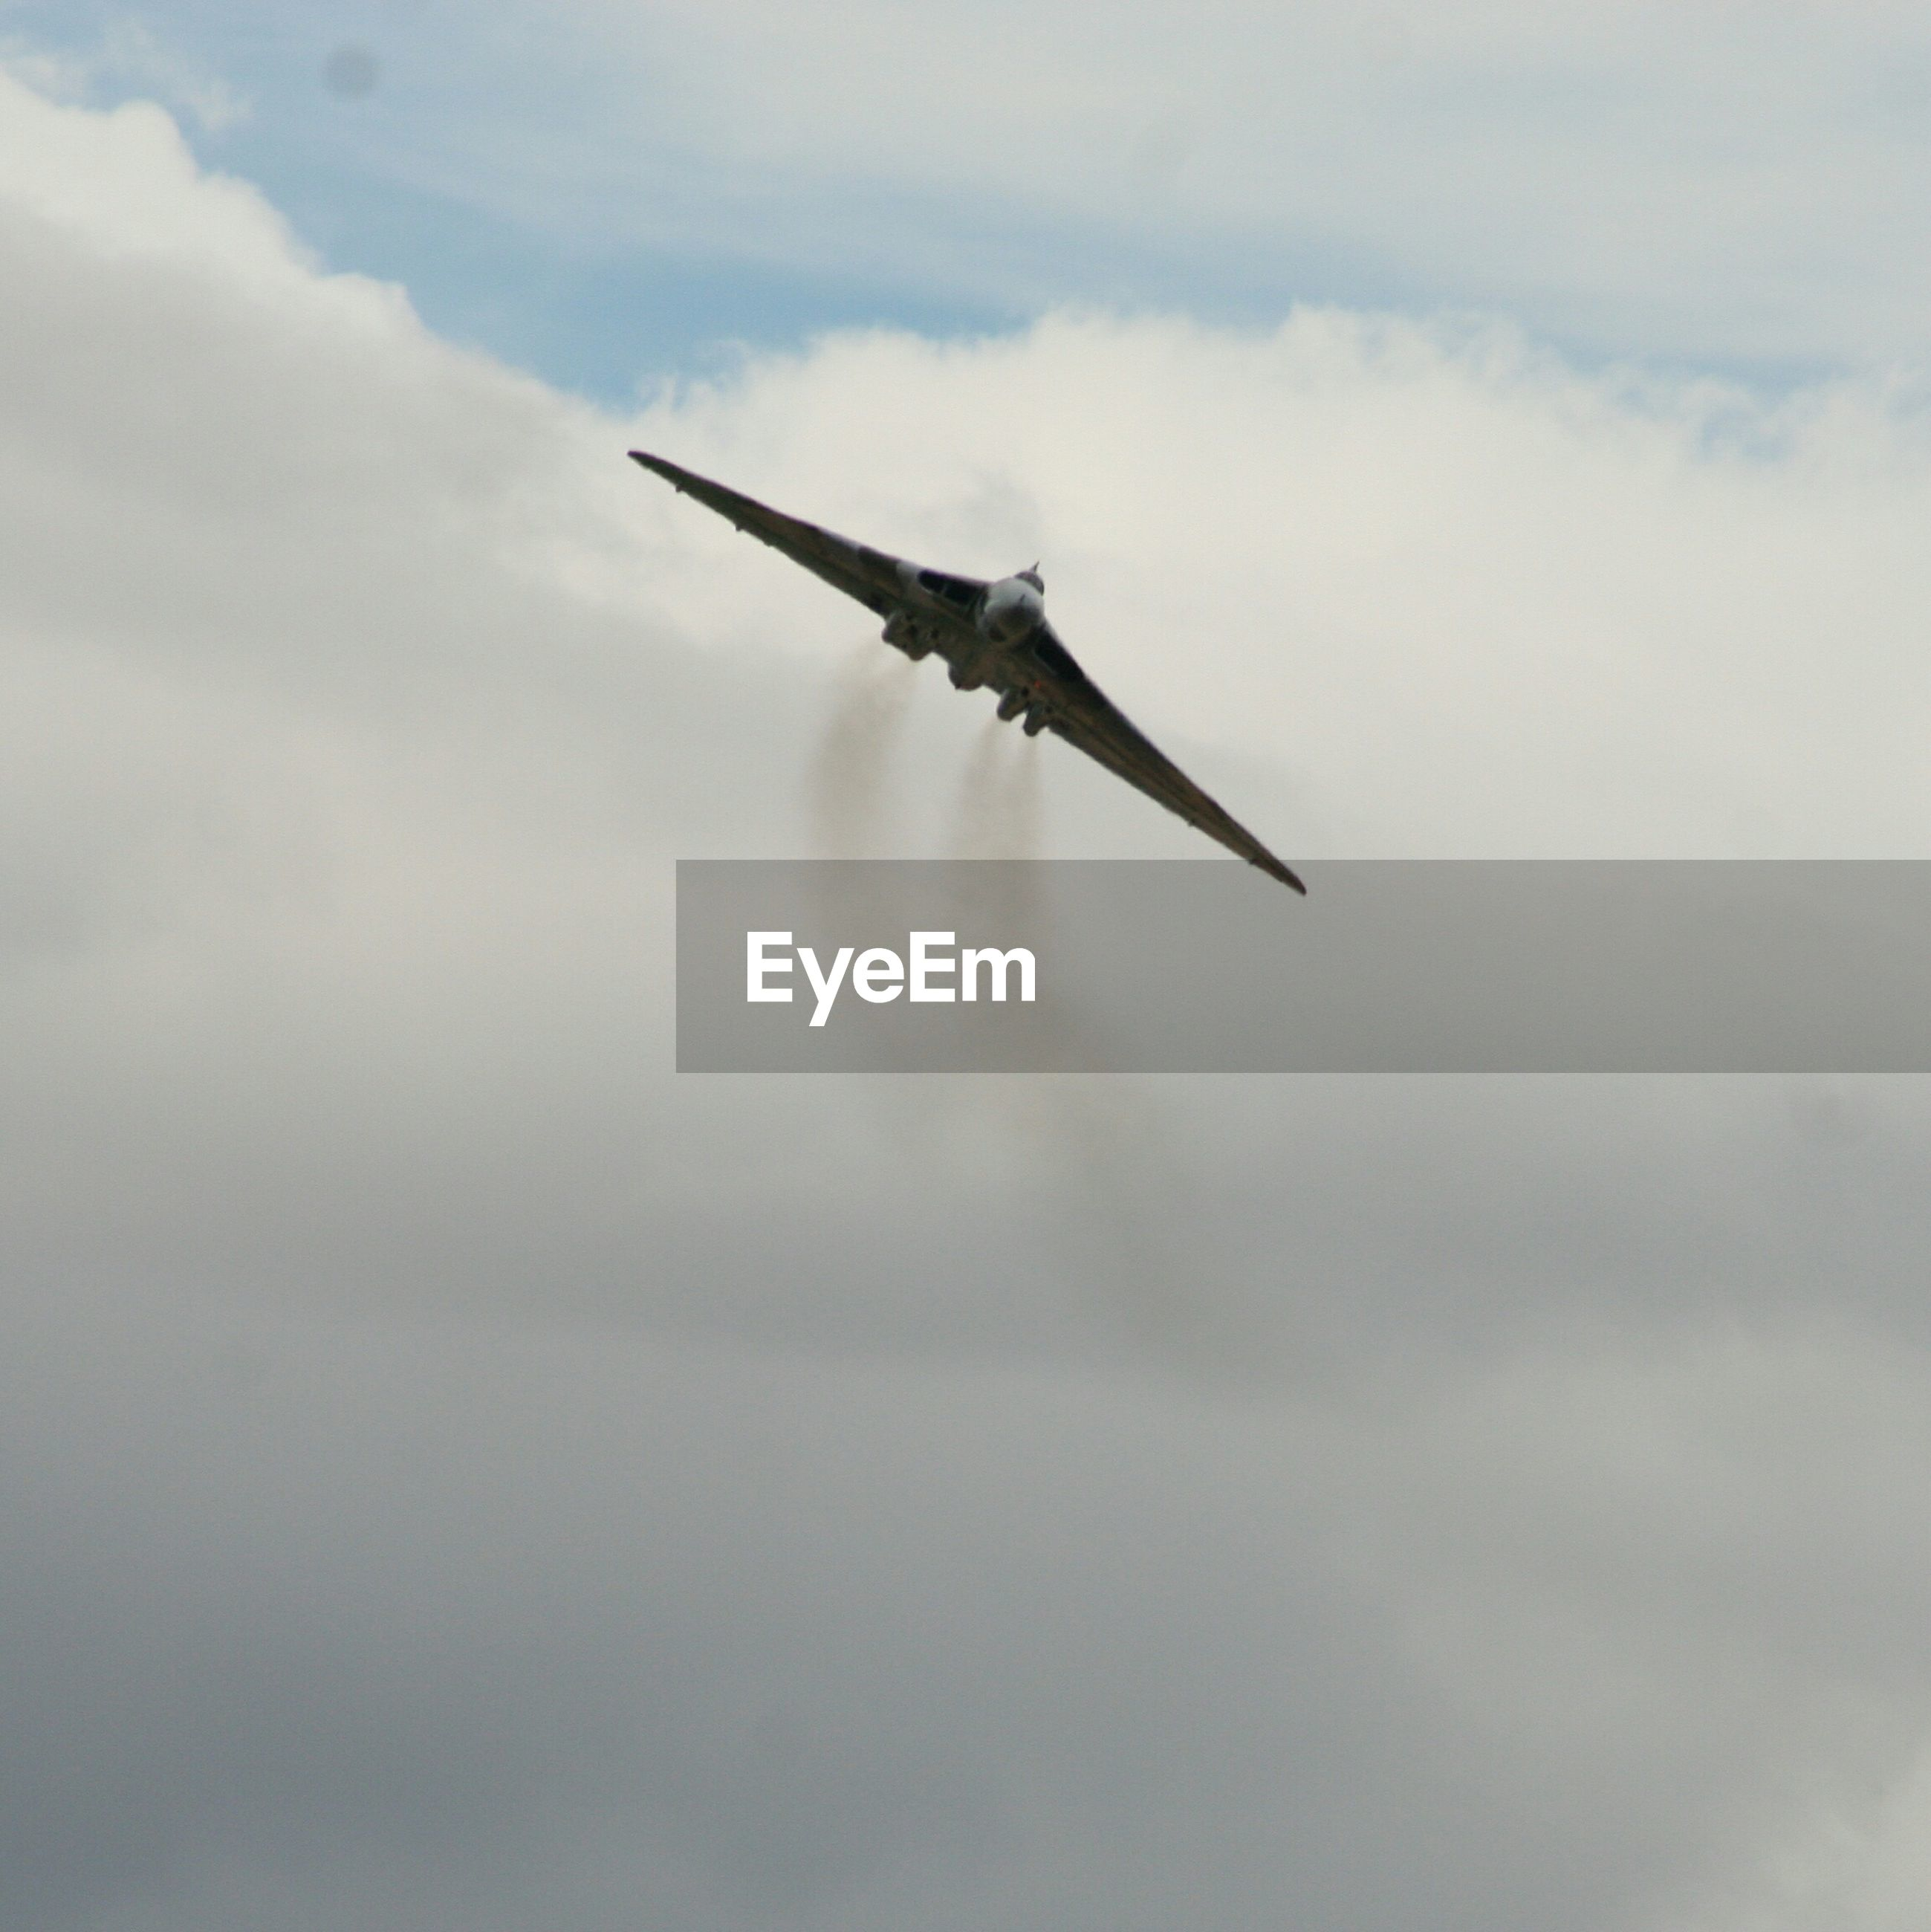 Low angle view of avro vulcan flying against cloudy sky